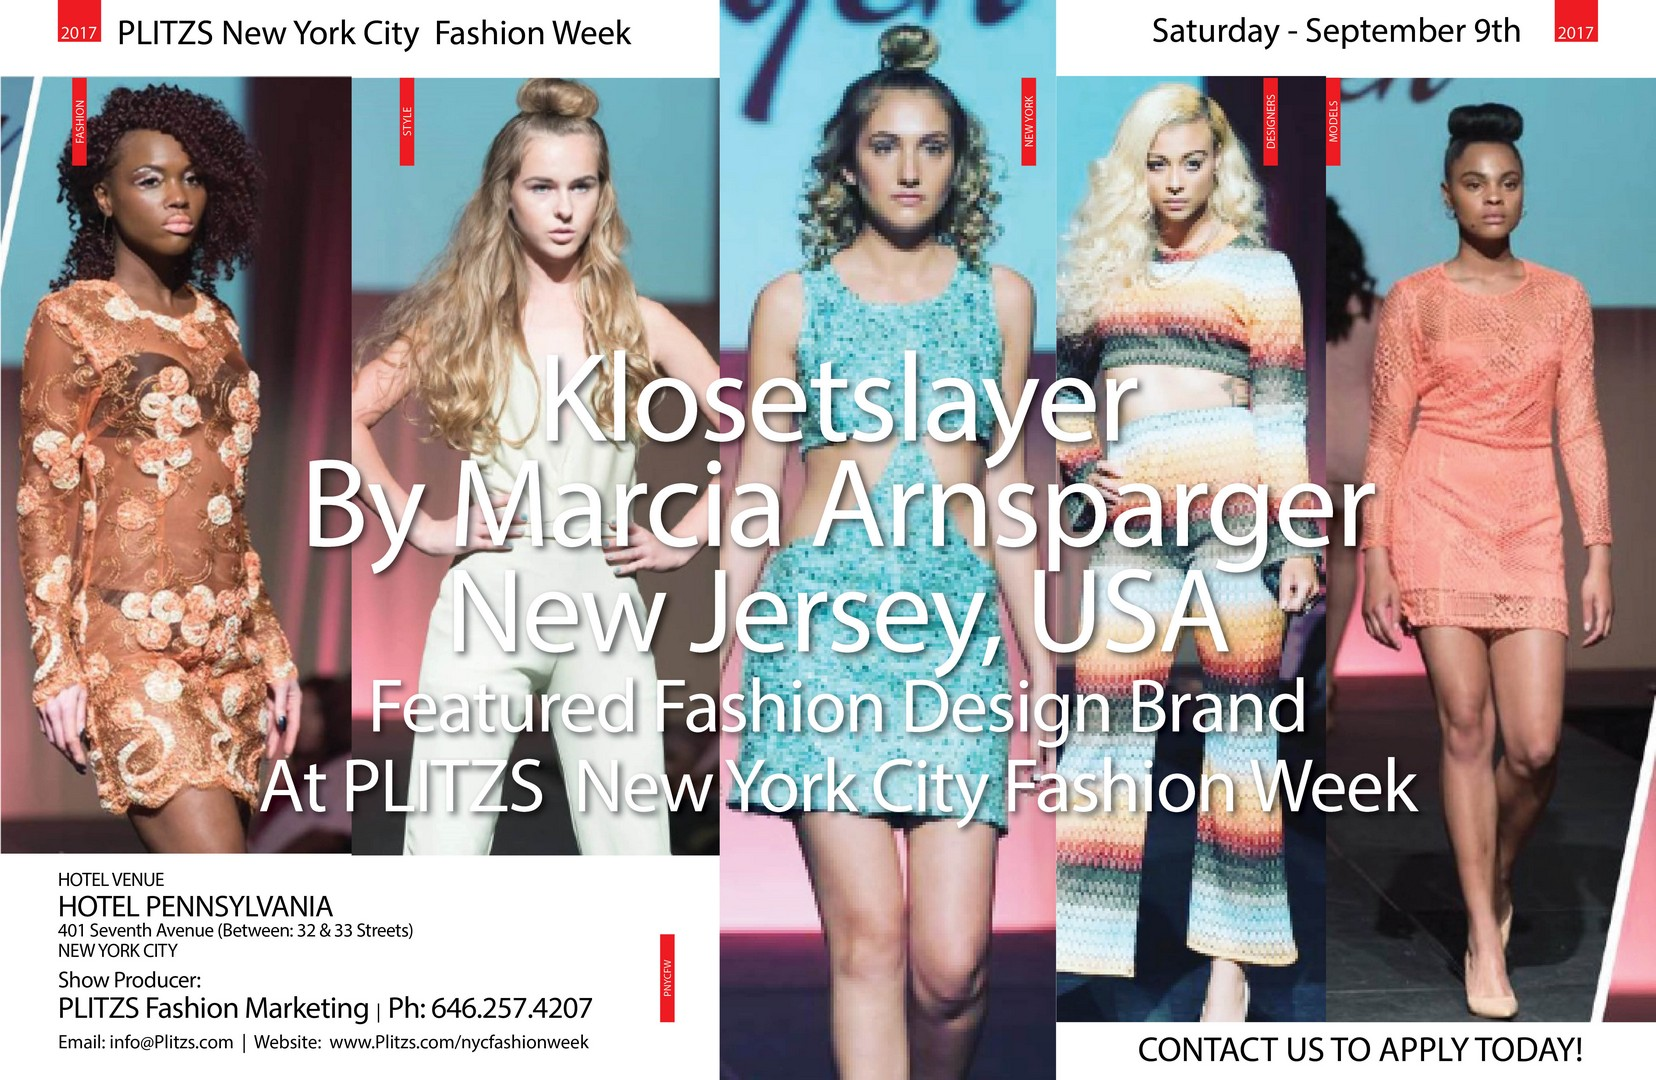 8:30PM – Klosetslayer By Marcia Arnsparger – New Jersey, USA Klosetslayer designer profile poster 2